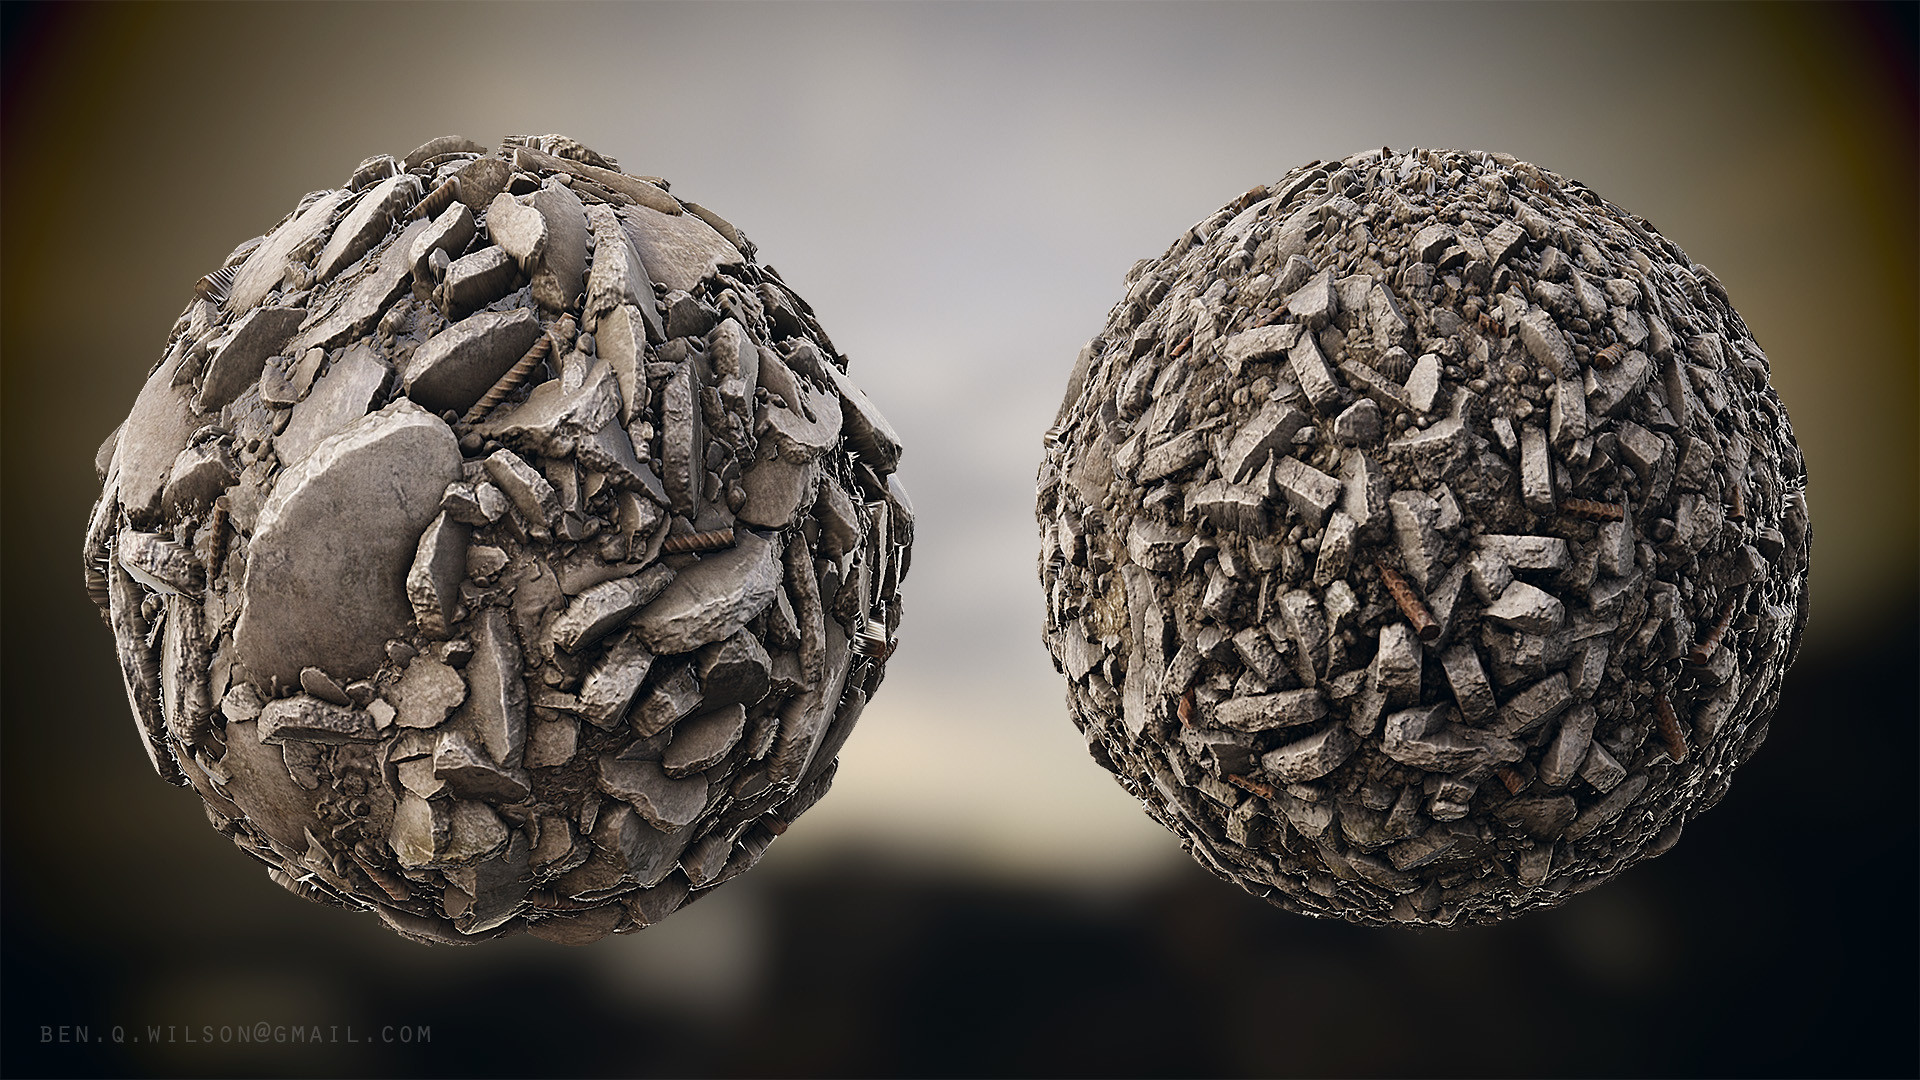 Ben wilson rubble 01 sphere renders a